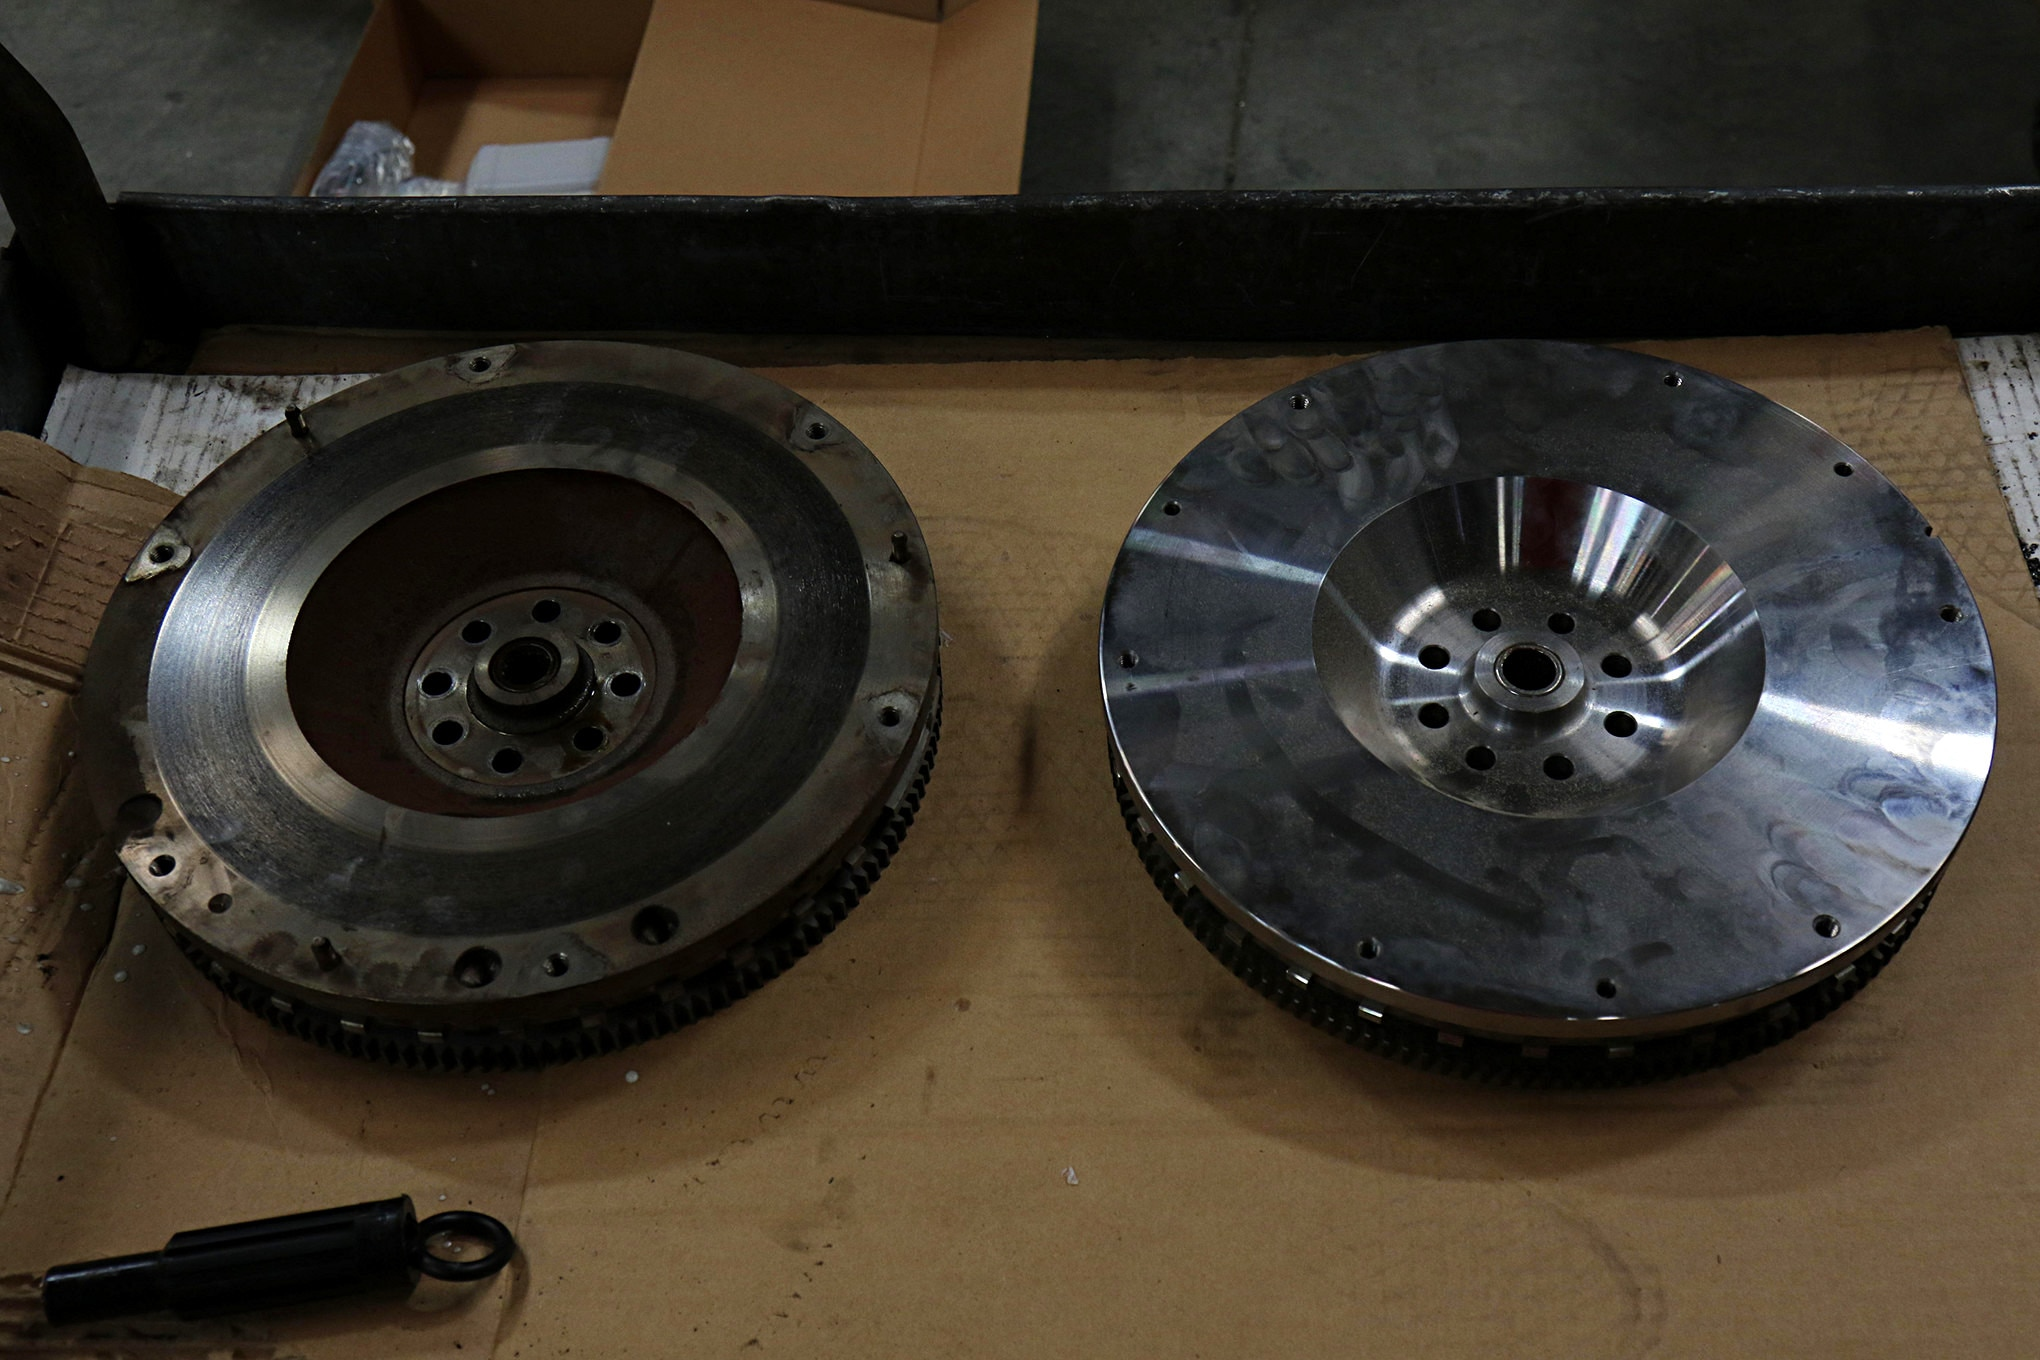 In a side-by-side comparison it's easy to see where Centerforce added 18 pounds of weight. The recessed center has more metal around it, fewer holes were drilled into the material, and overall the flywheel is thicker. The greatest advantage to the heavier flywheel is that it helps the engine to keep turning at lower rpm. That extra rotating mass has more inertia for low-speed crawling, and you can lug the engine down much more without stalling than you can with the factory setup.